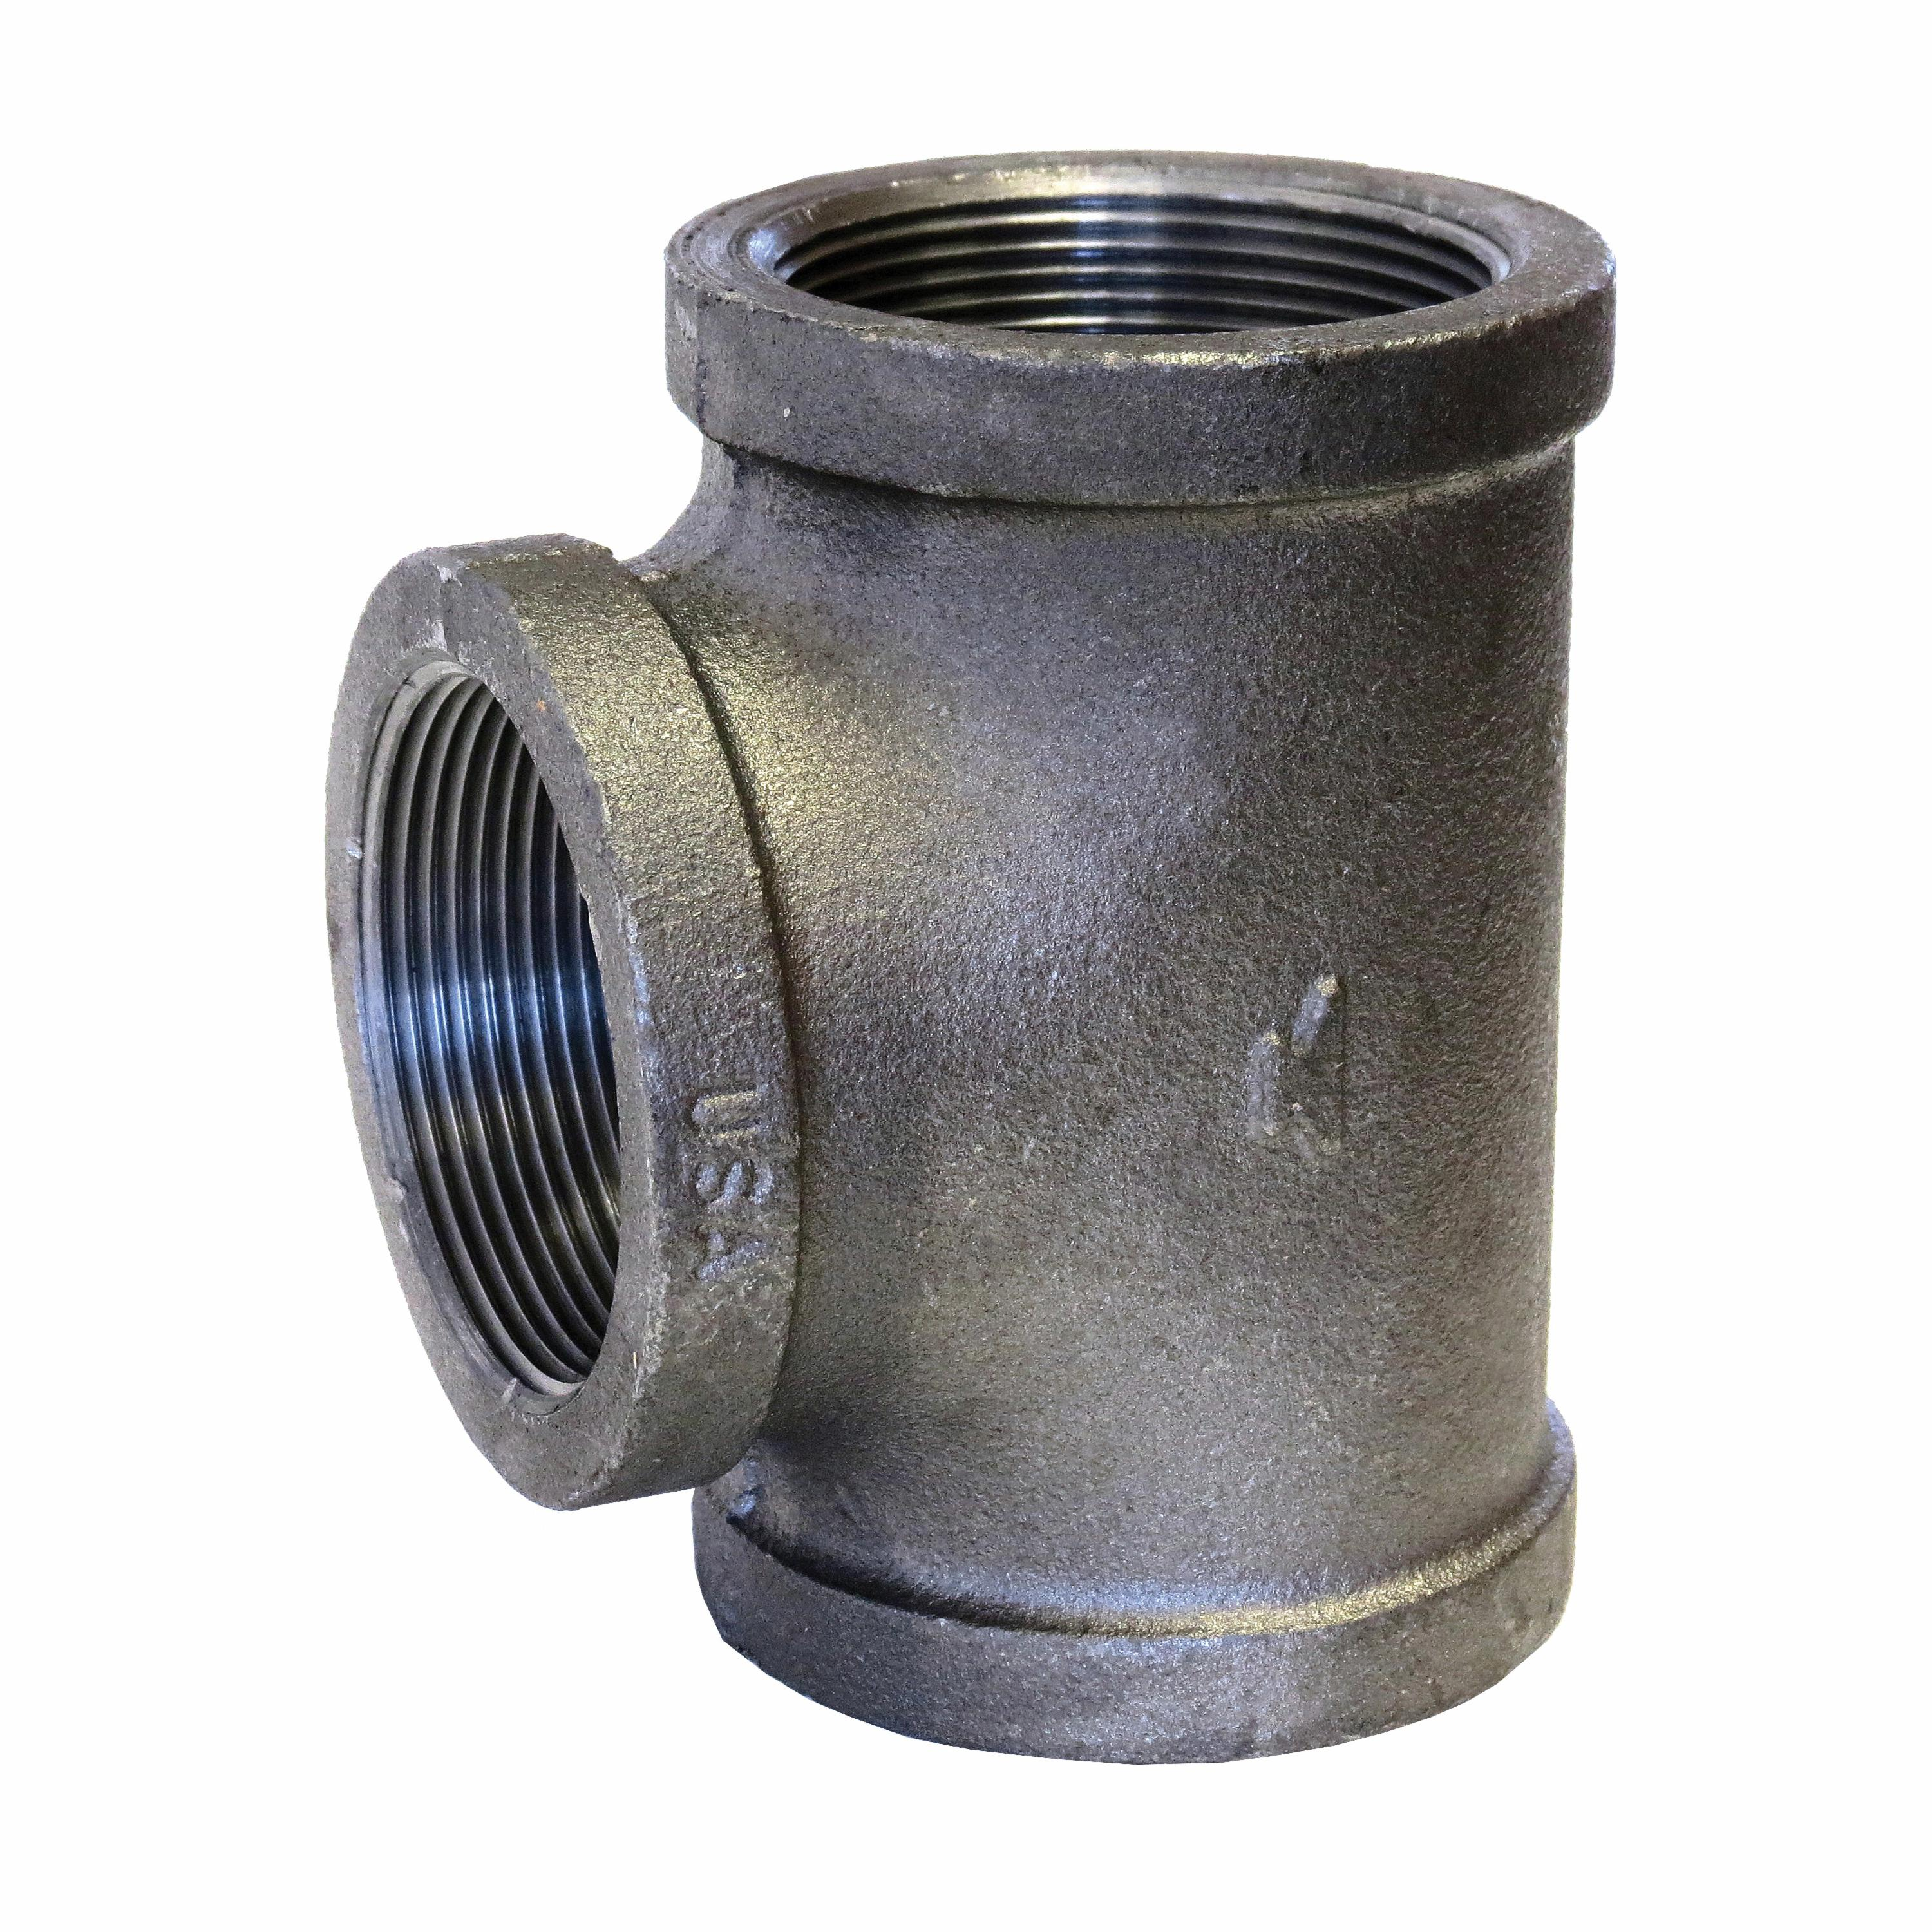 SPF/Anvil™ 0811031210 FIG 3105 Straight Pipe Tee, 3 in, FNPT, 150 lb, Malleable Iron, Galvanized, Import